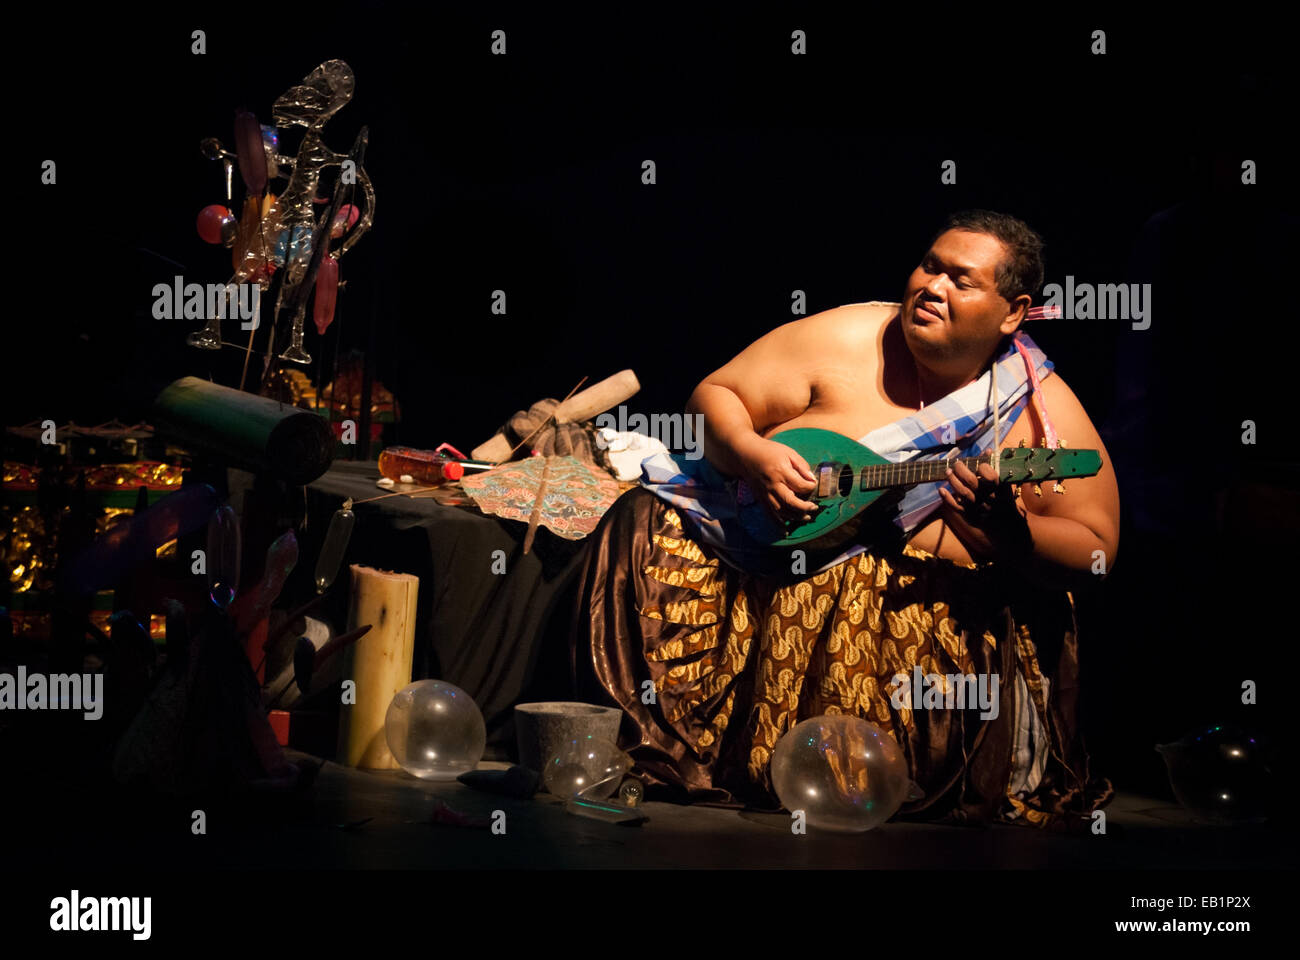 Slamet Gundono, a late Indonesian modern puppeteer during a show in Salihara Theater, Jakarta, Indonesia. - Stock Image